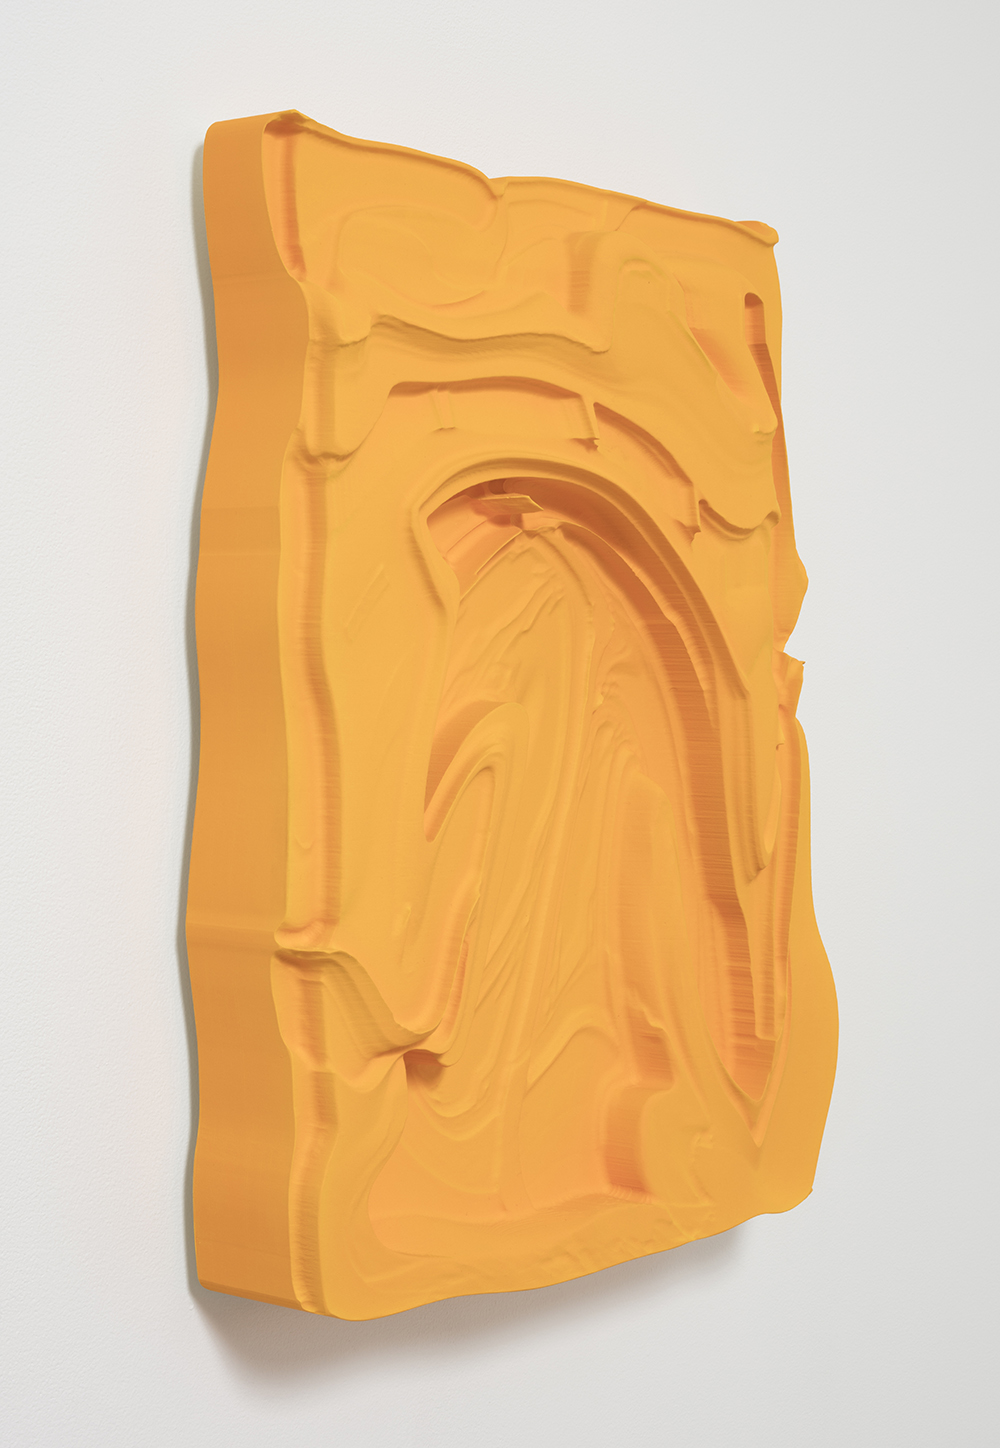 Michael Staniak. <em>OBJ_393</em>, 2017. Polyurethane resin and acrylic, 25 x 20 x 4 inches